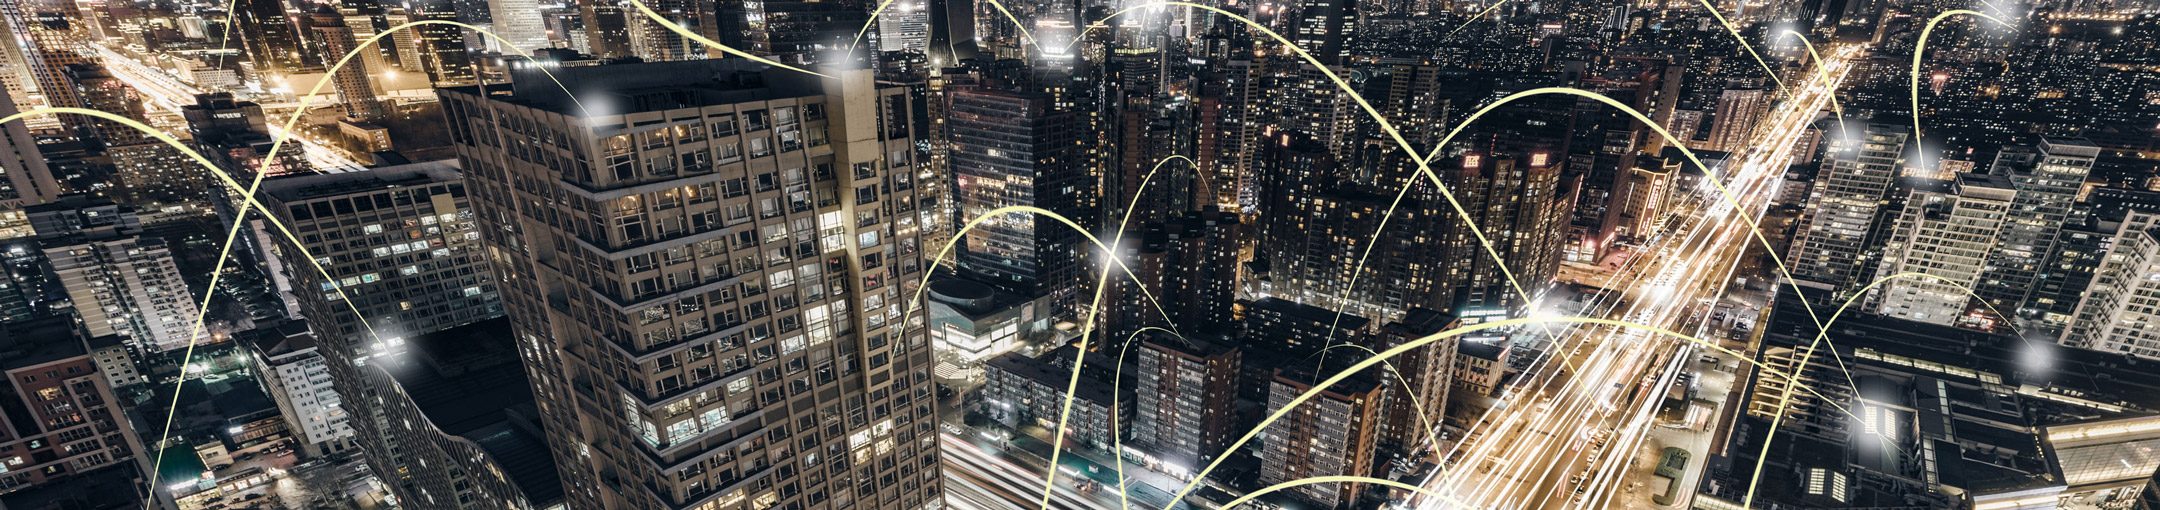 An aerial view of a city at night, with added on curved lines of light hopping from place to place.